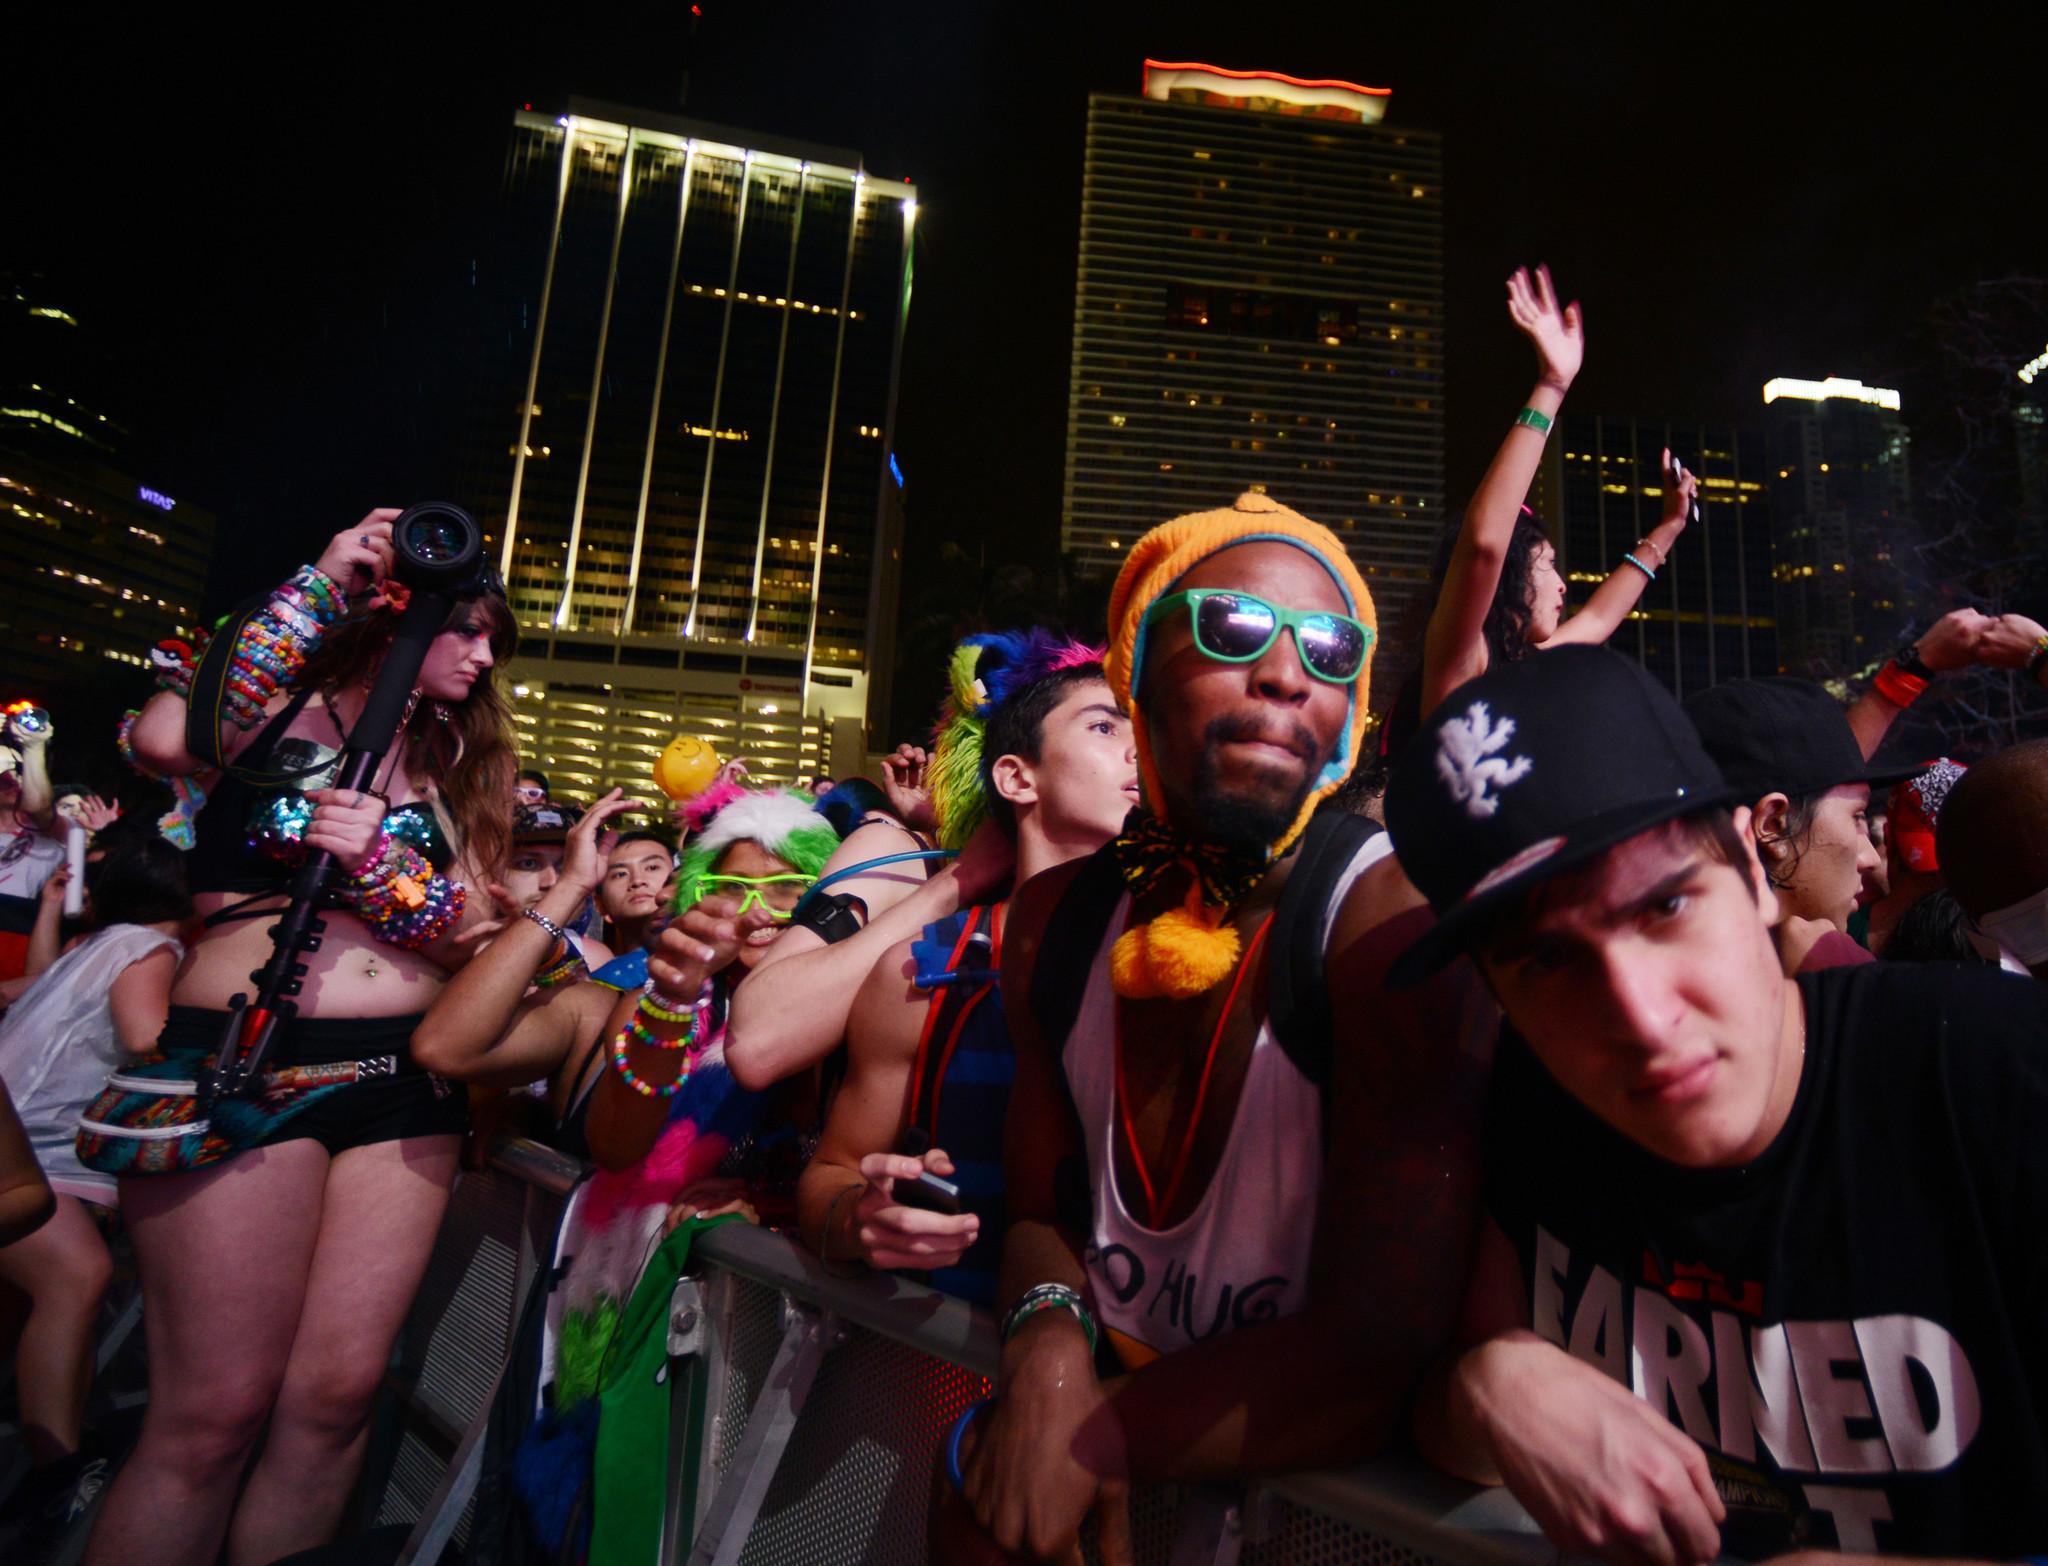 Ultra Music Festival 2014 fans and artists - Ultra 2014